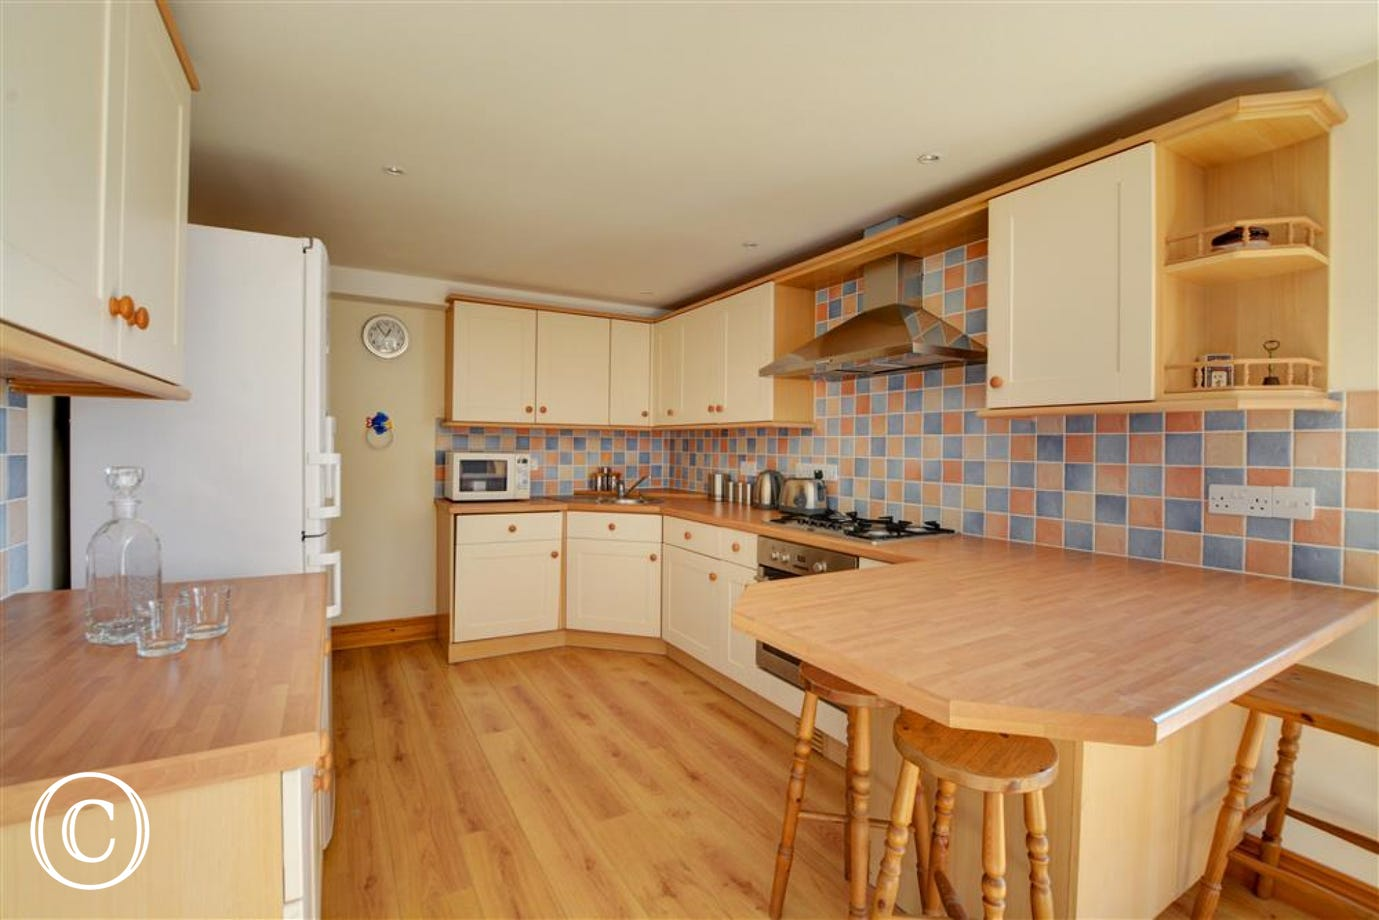 Open plan kitchen area all fully equipped to enjoy a self catering stay.